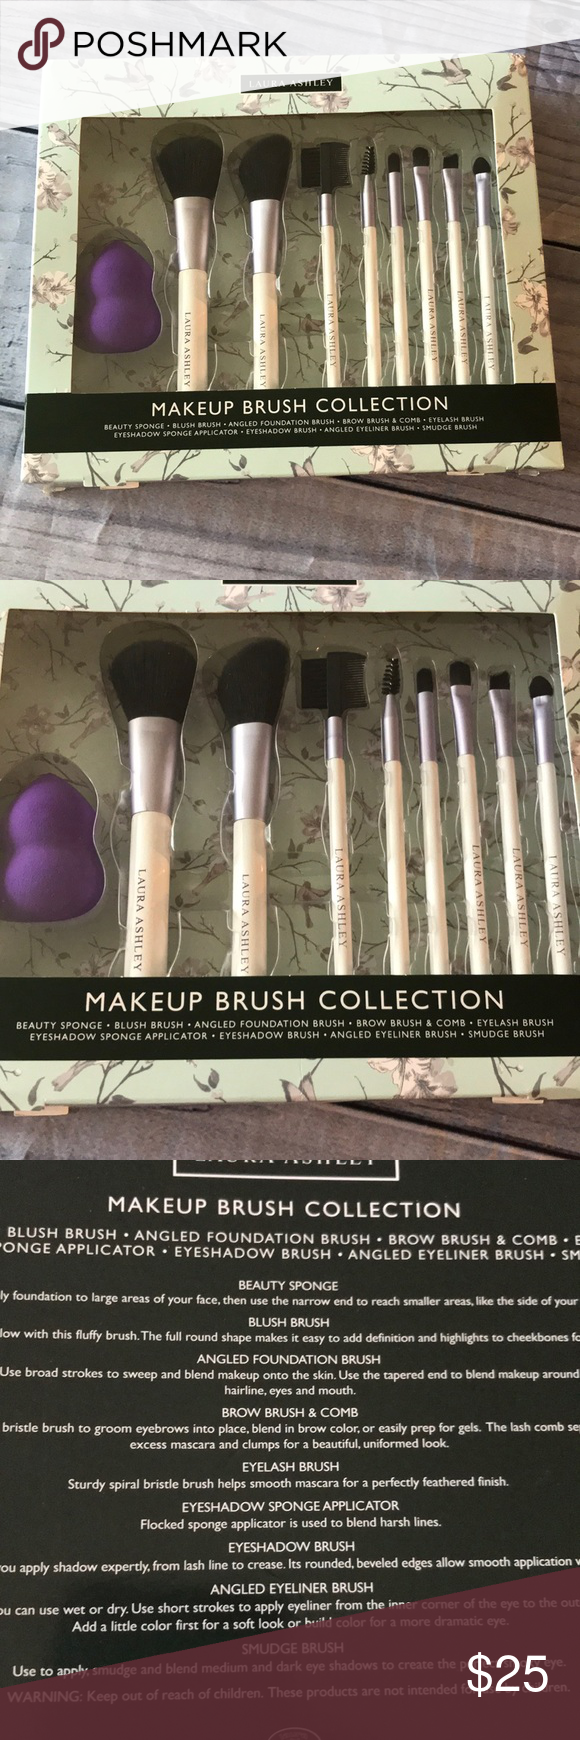 Host Pick Laura Ashley Makeup Brush Collection This brush